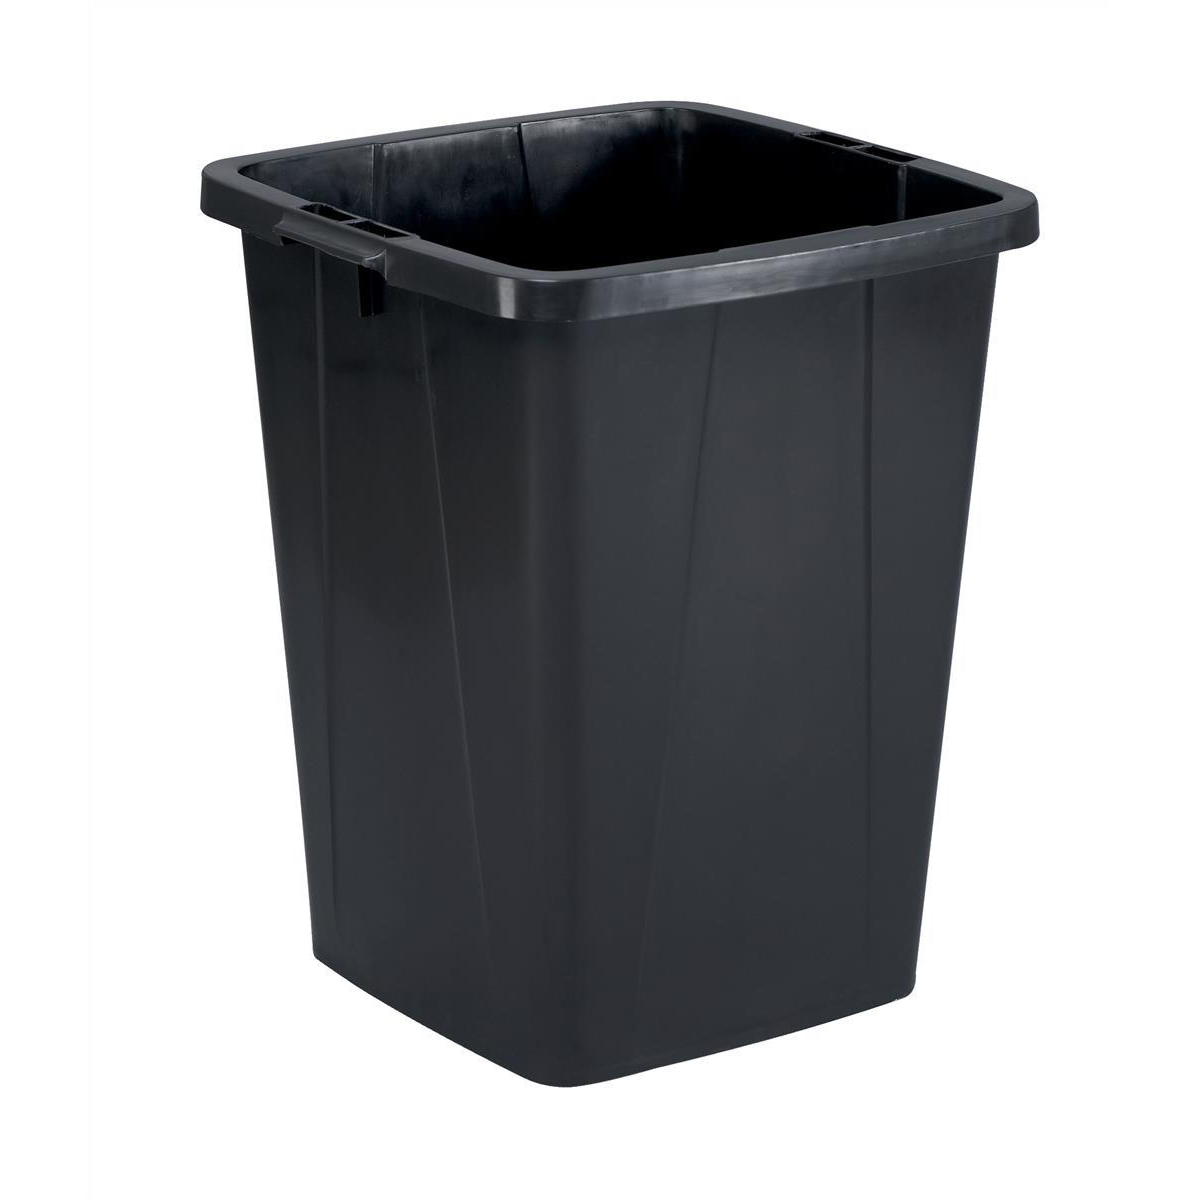 Durable Durabin Slim Bin for Recycling Waste 90 Litre Capacity 515x485x605mm Black Ref 1800474221